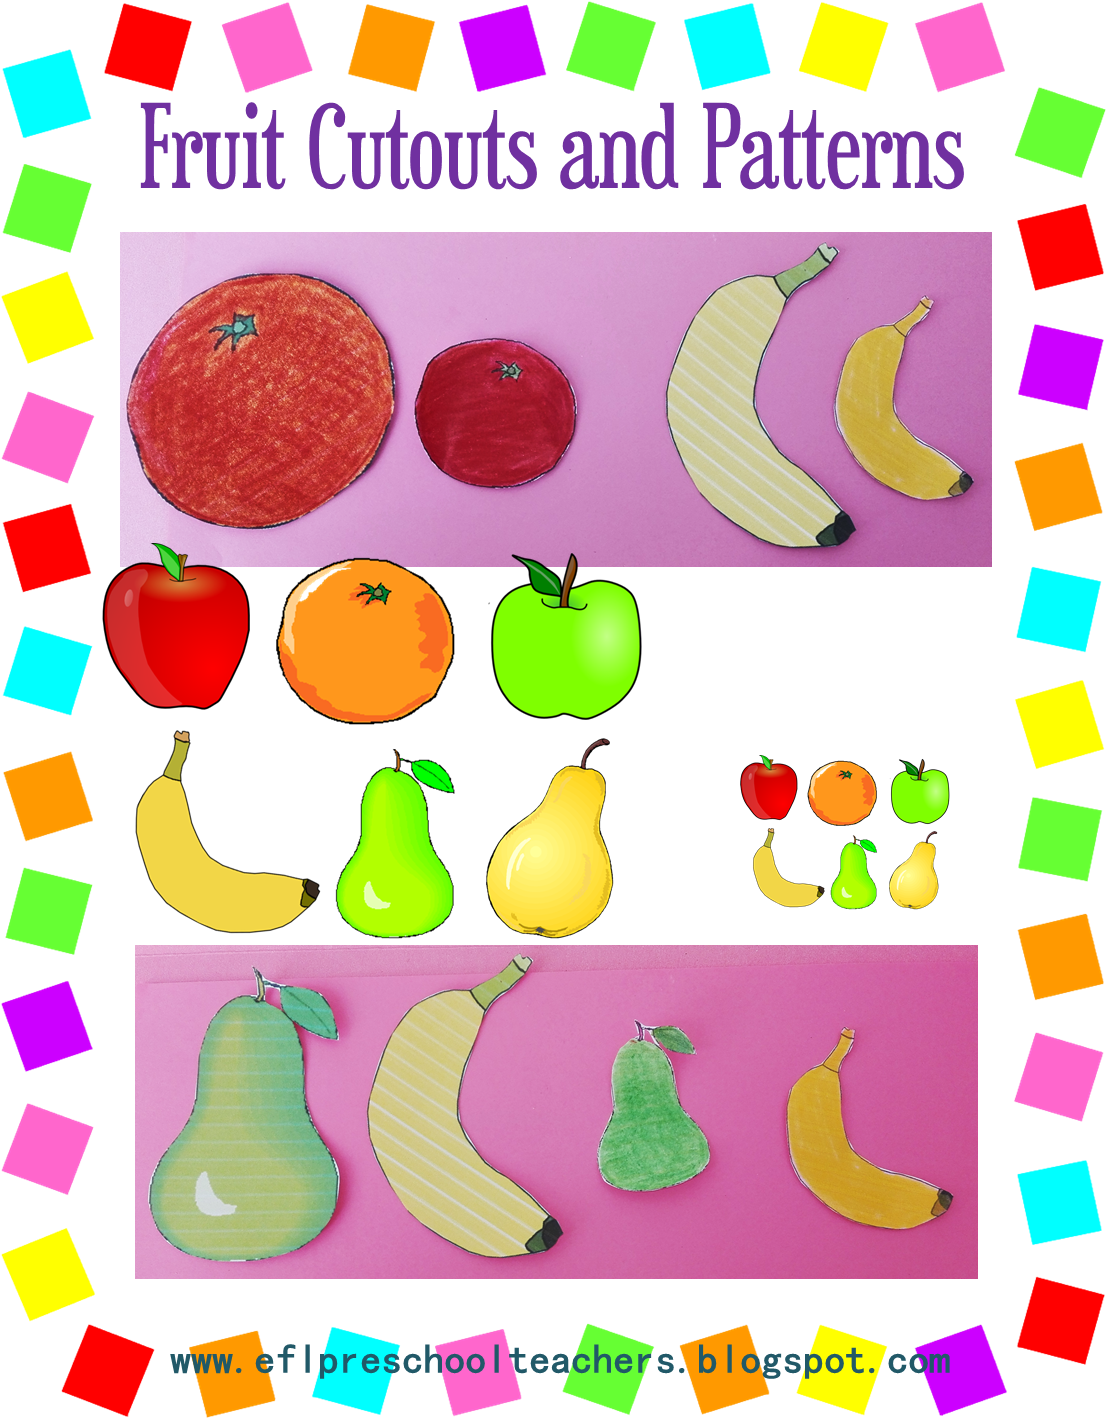 Esl Efl Preschool Teachers Fruit Theme For The Ell